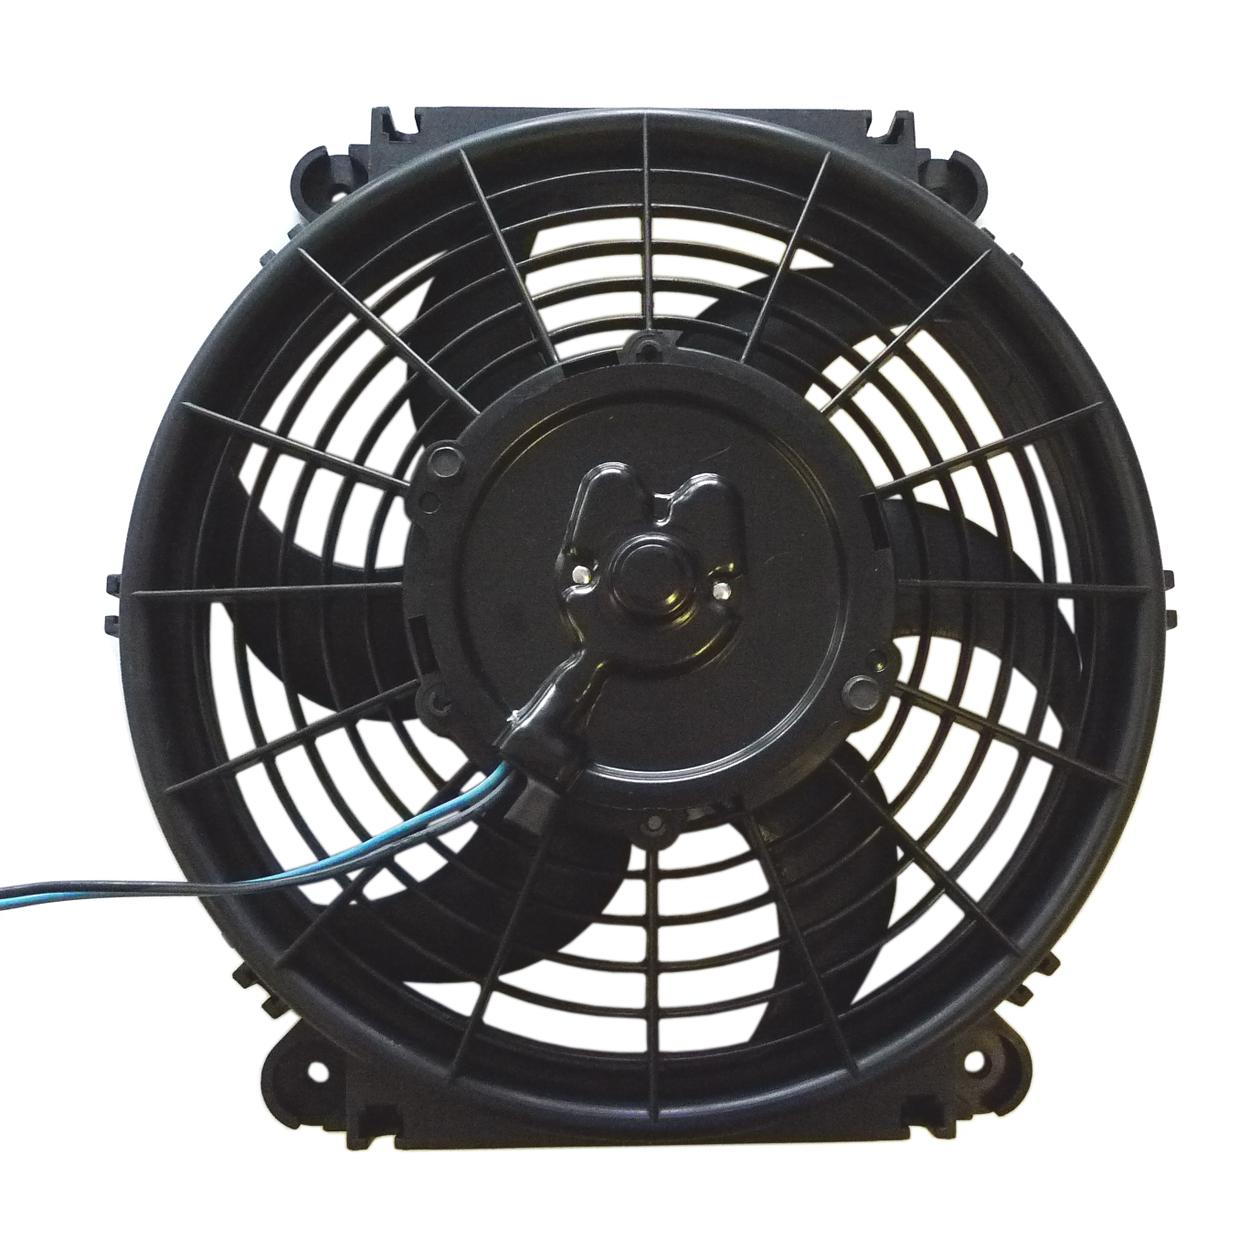 Electric Radiator Cooling Fan 9 Inch Diameter From Merlin